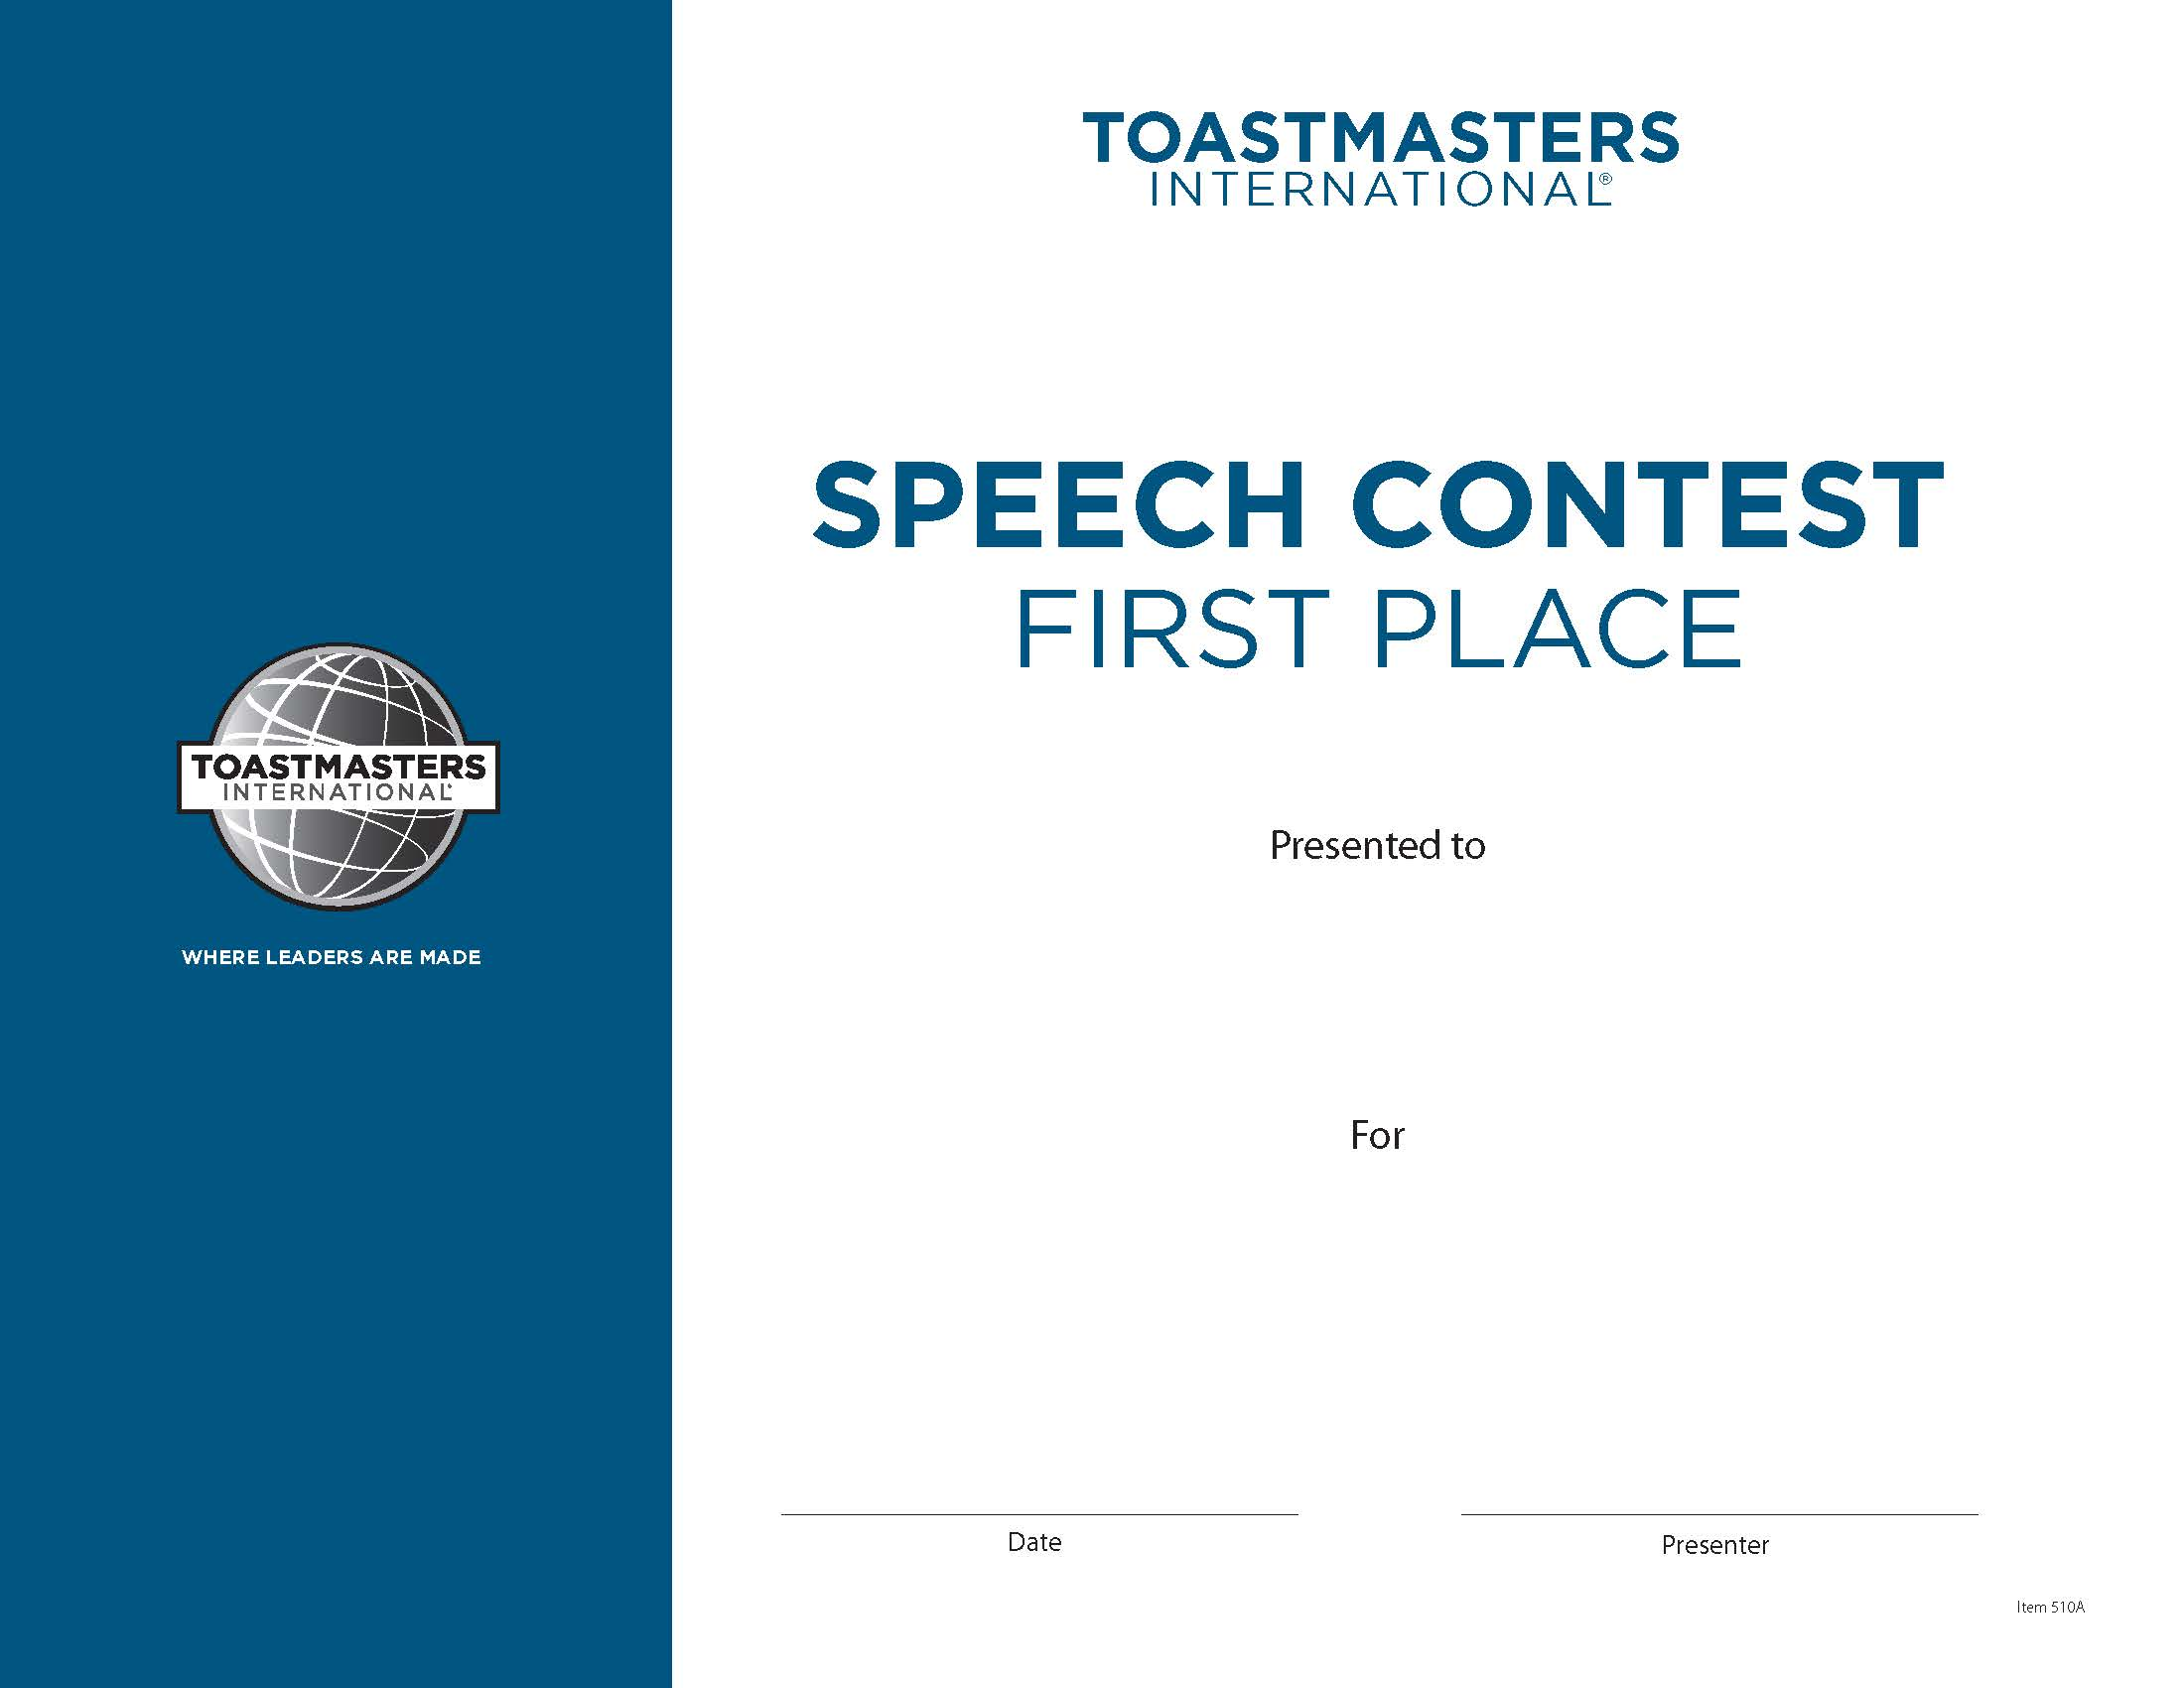 Toastmasters Speech Contest First Place